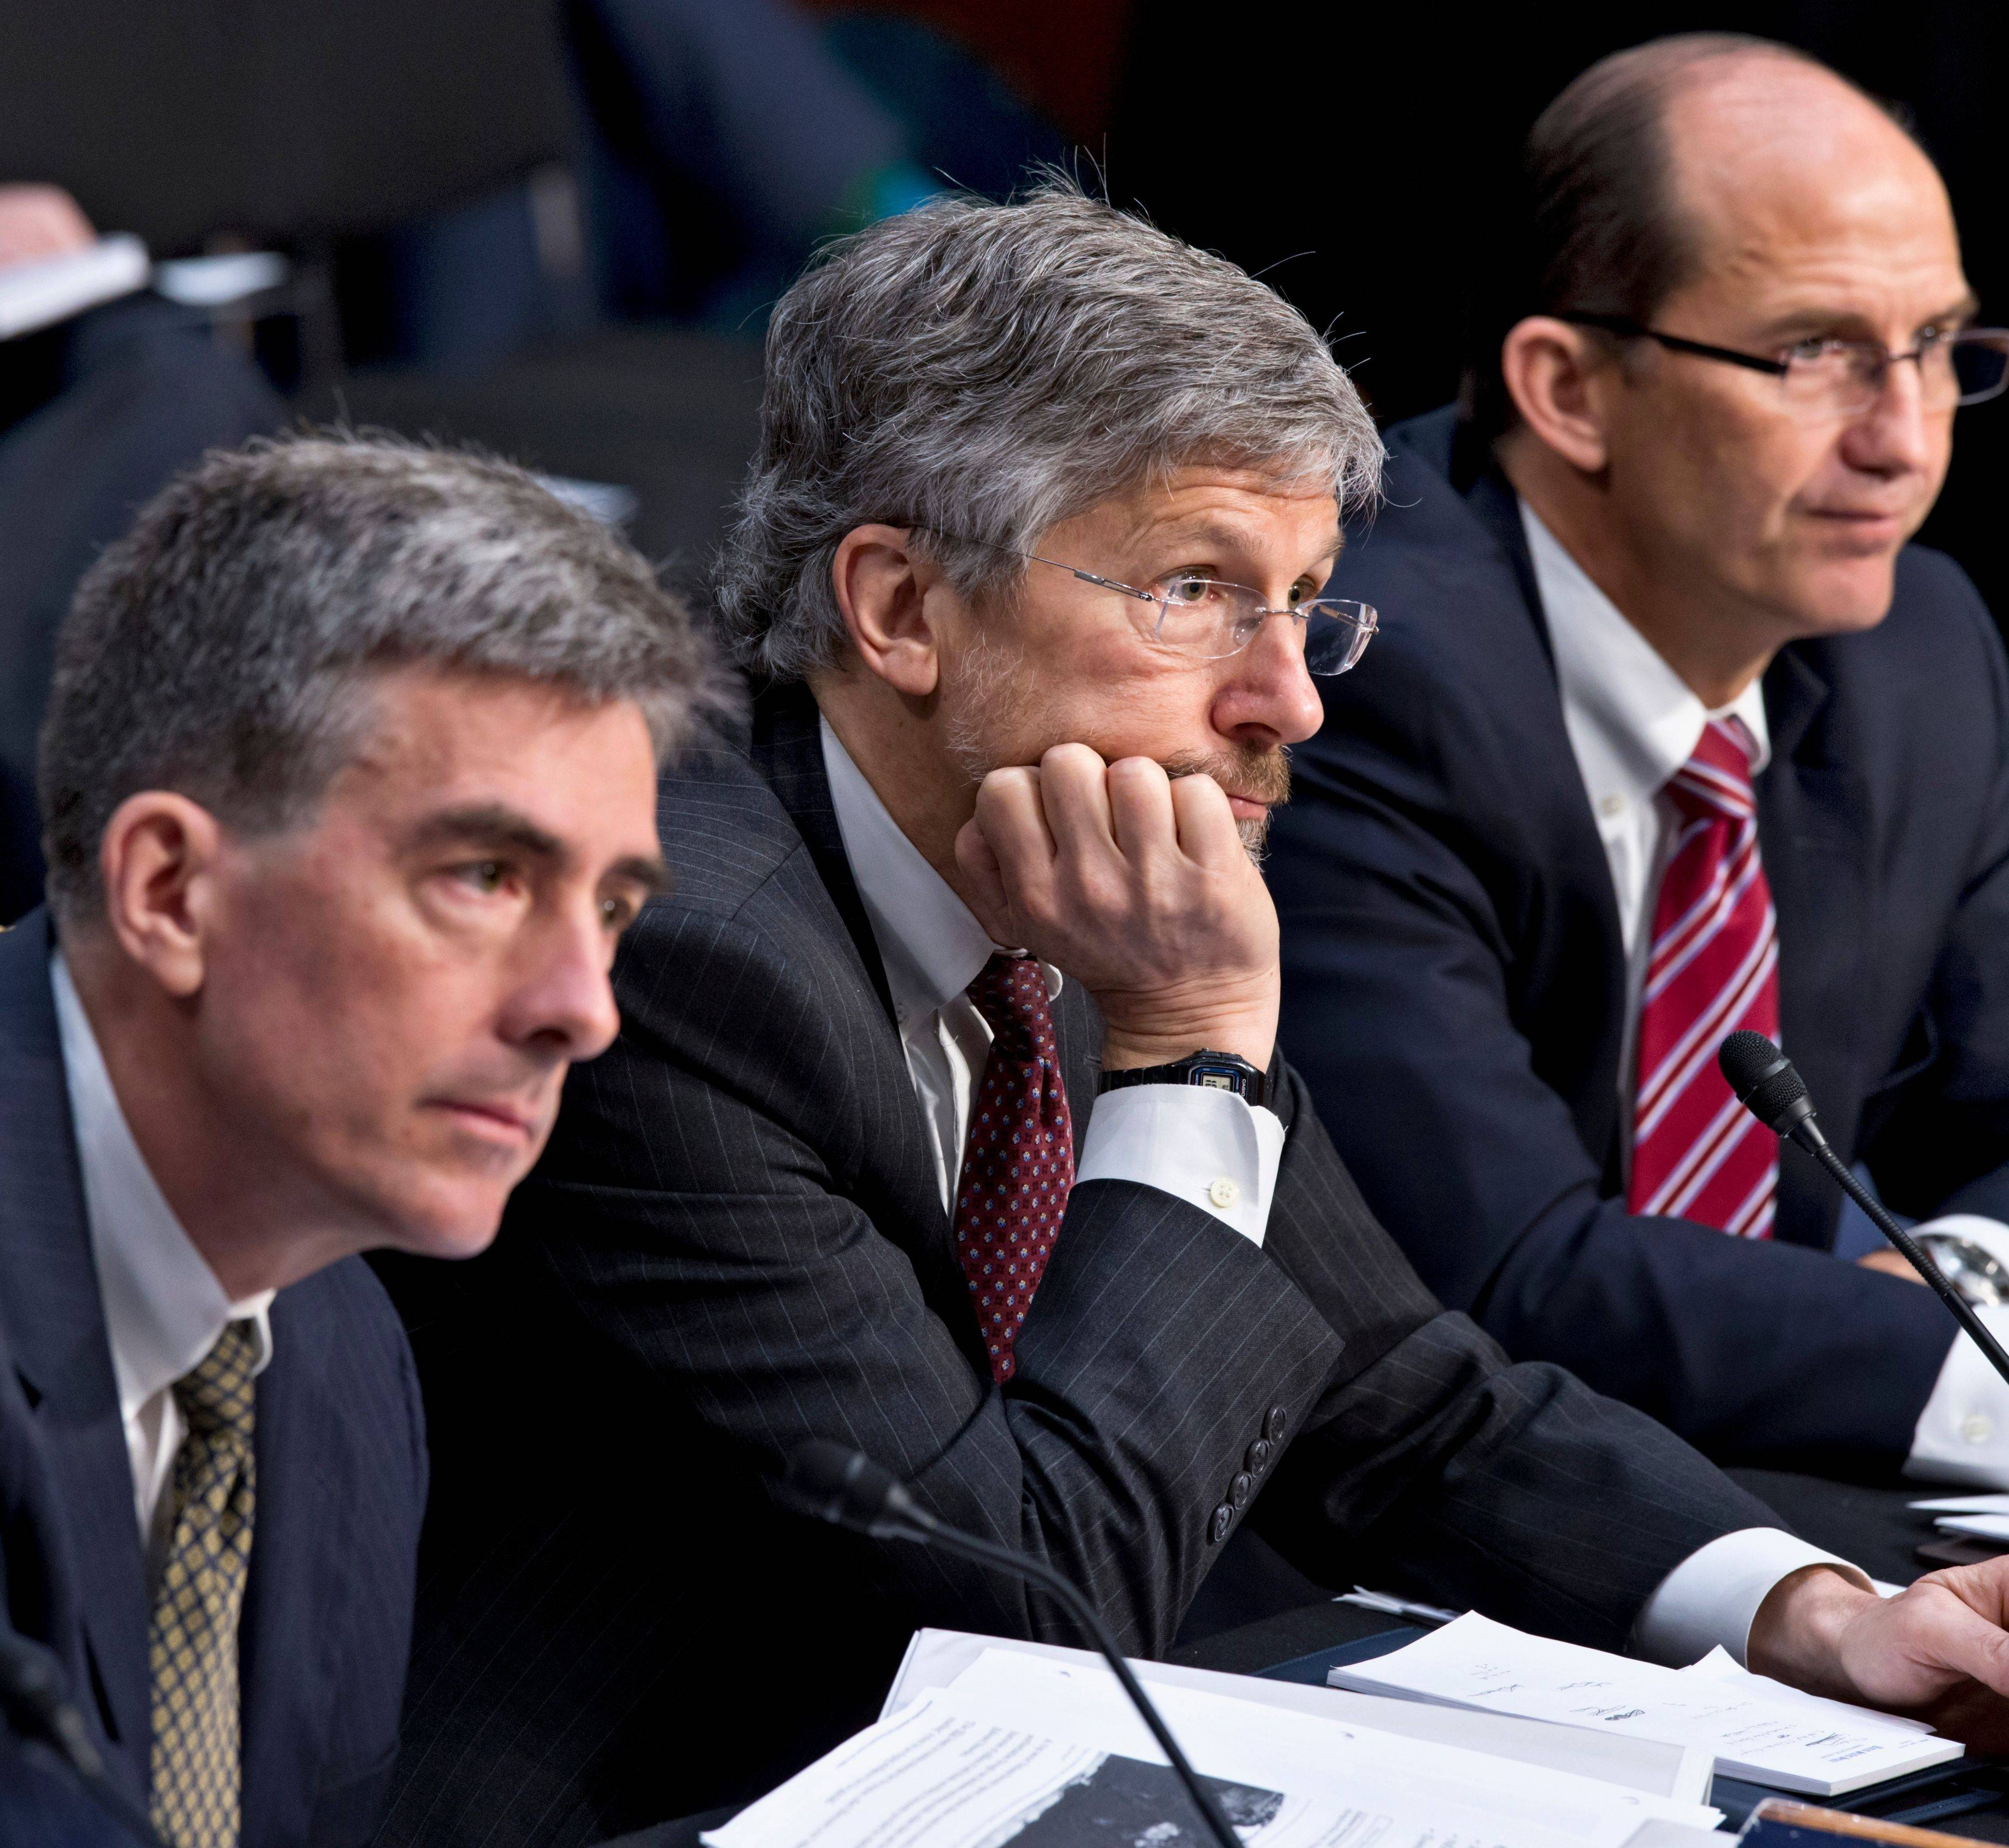 From left, National Security Agency Deputy Director John C. Inglis; Robert Litt, general counsel in the Office of Director of National Intelligence; and Sean Joyce, deputy director of the FBI, testify on Capitol Hill Wednesday.